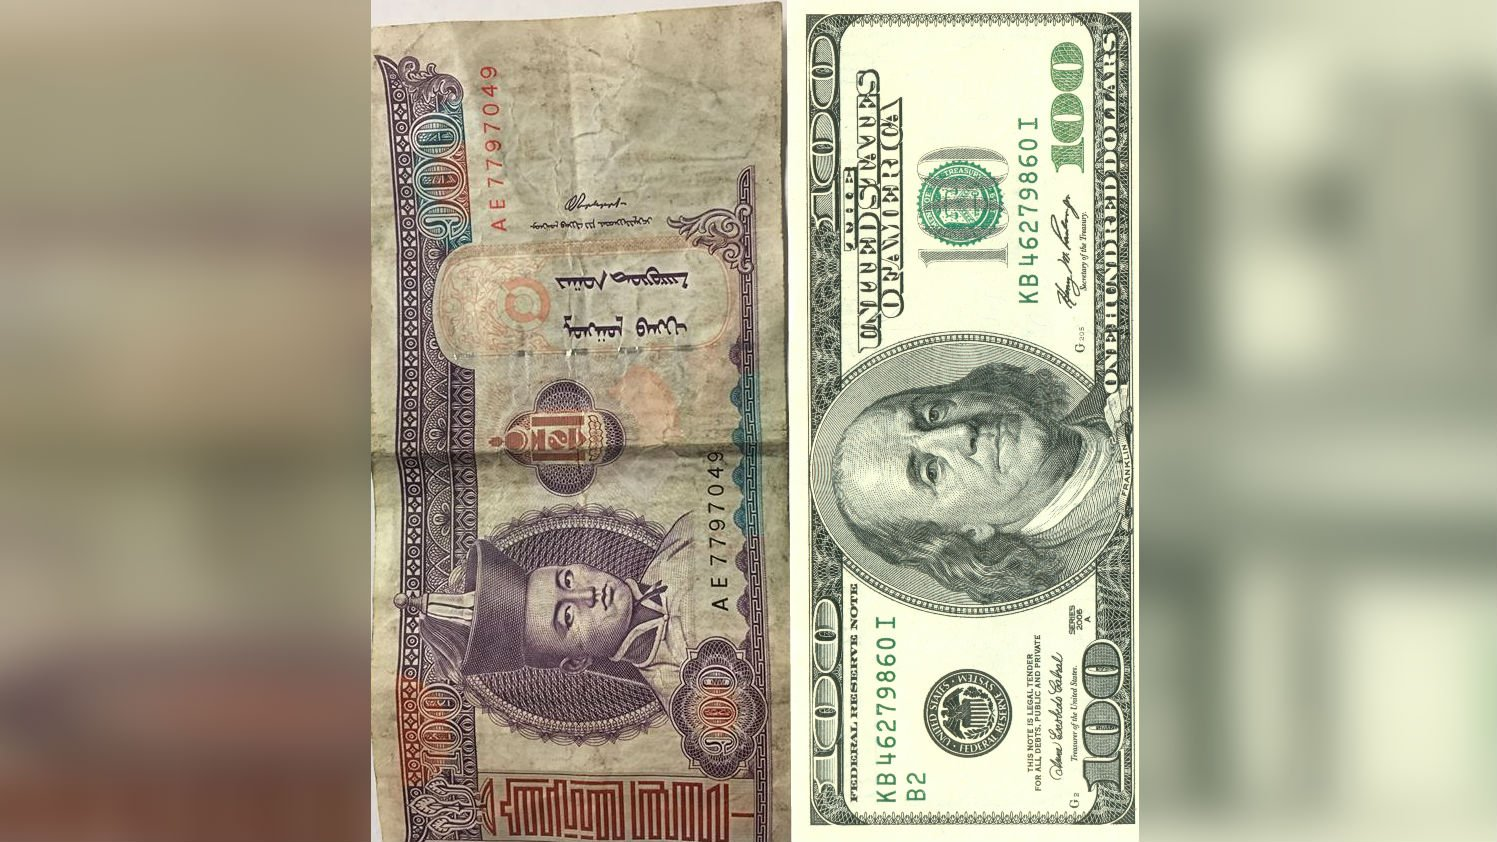 Can you spot which one is Mongolian and which one is US currency?